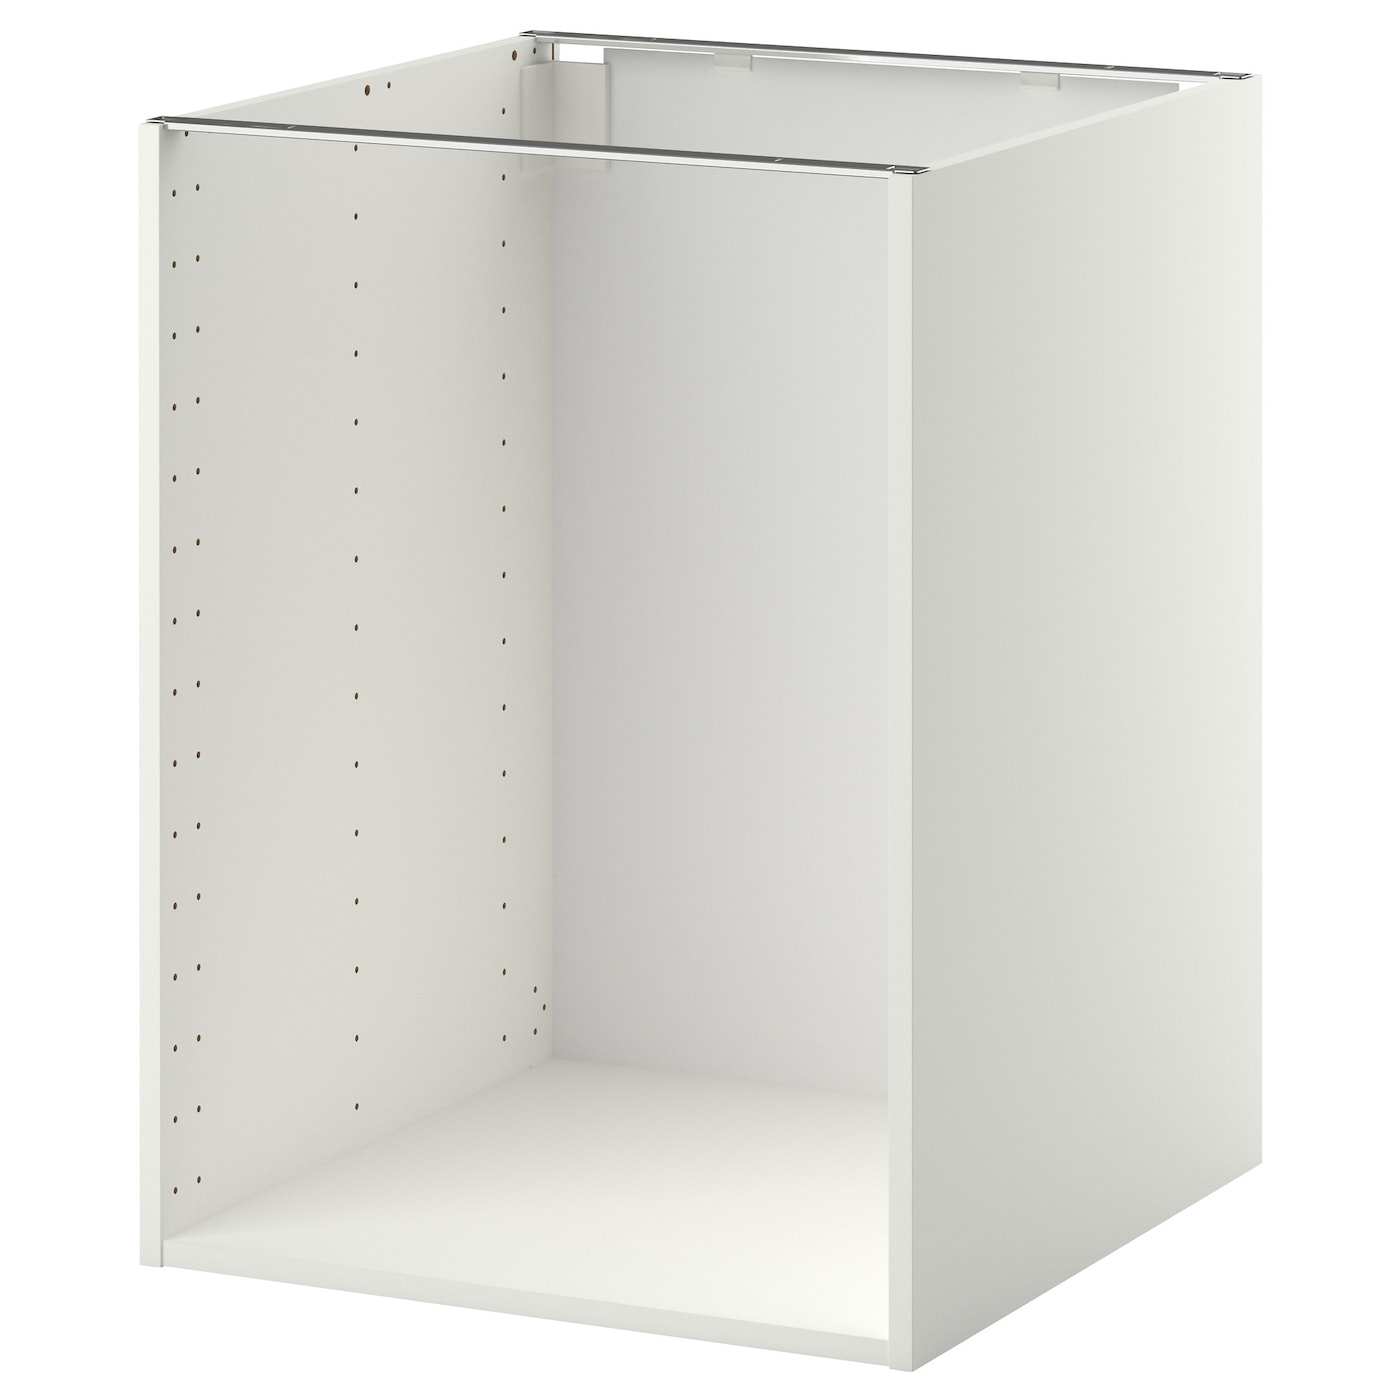 ikea kitchen cabinet construction metod base cabinet frame white 60x60x80 cm ikea 17614